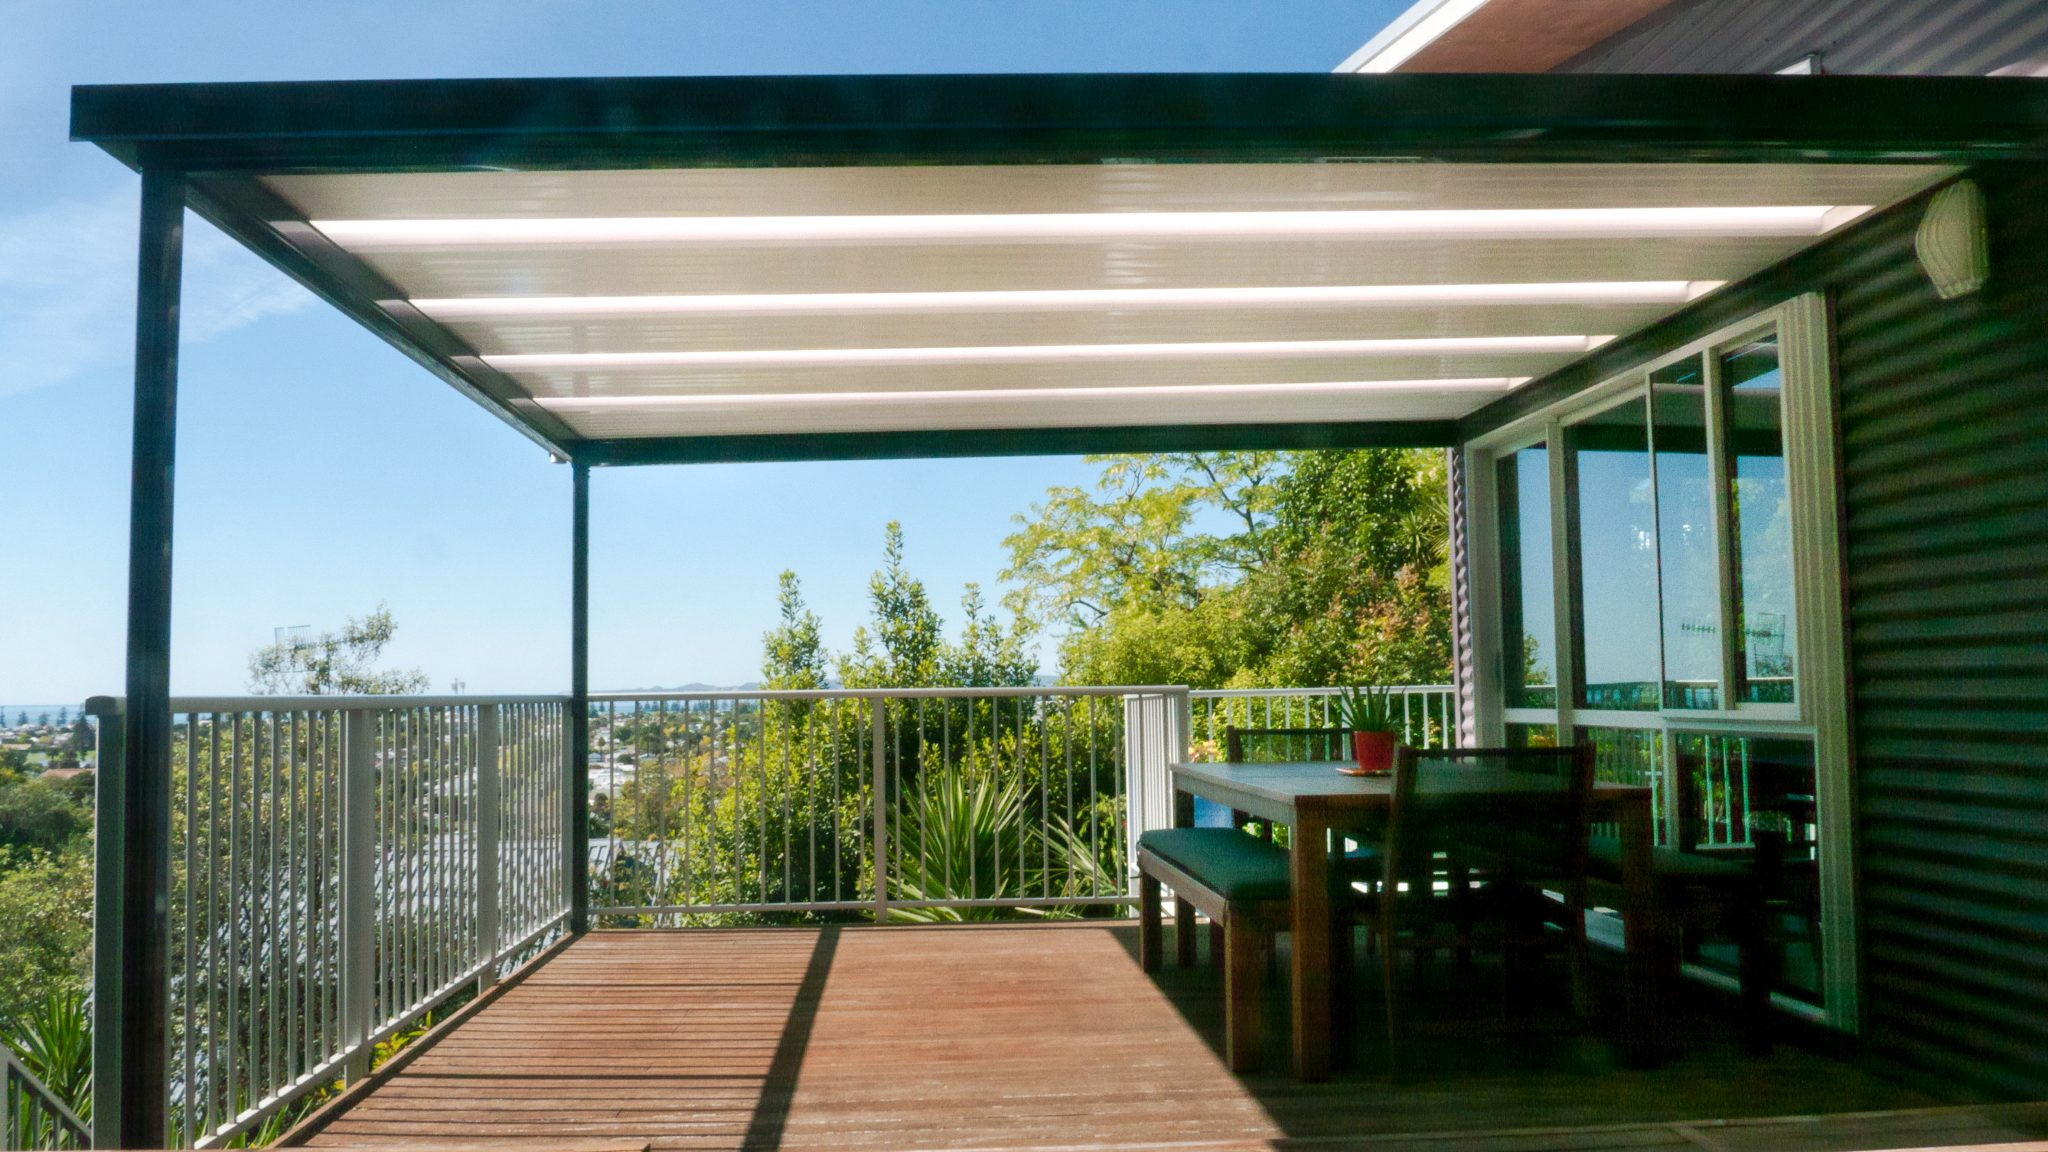 A Stratco Outback Flat pergola roof installed by Suncoast Patios Ltd on a deck with a beautiful view over napier from hospital hill